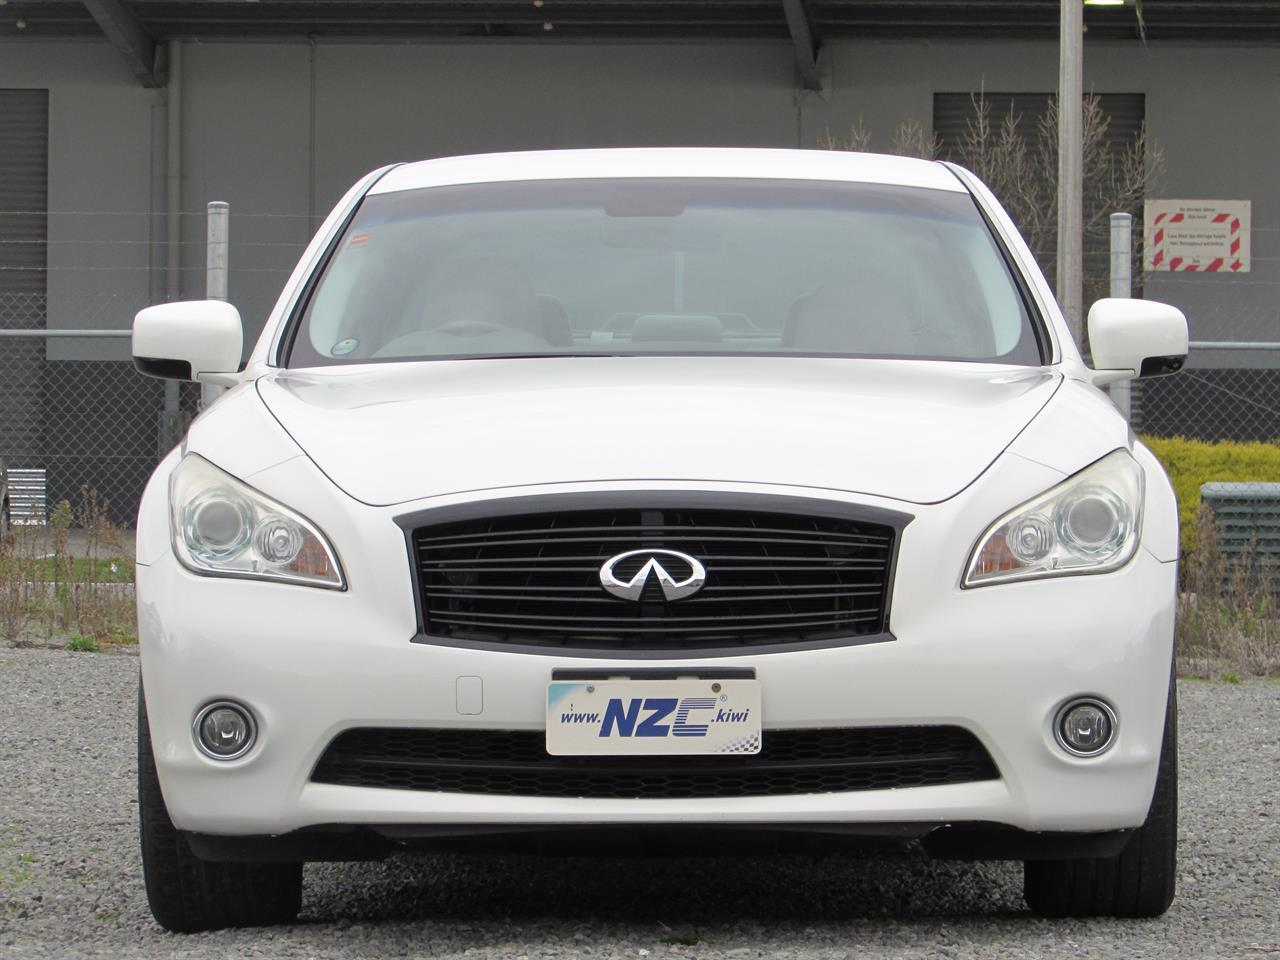 2010 Nissan Fuga only $55 weekly